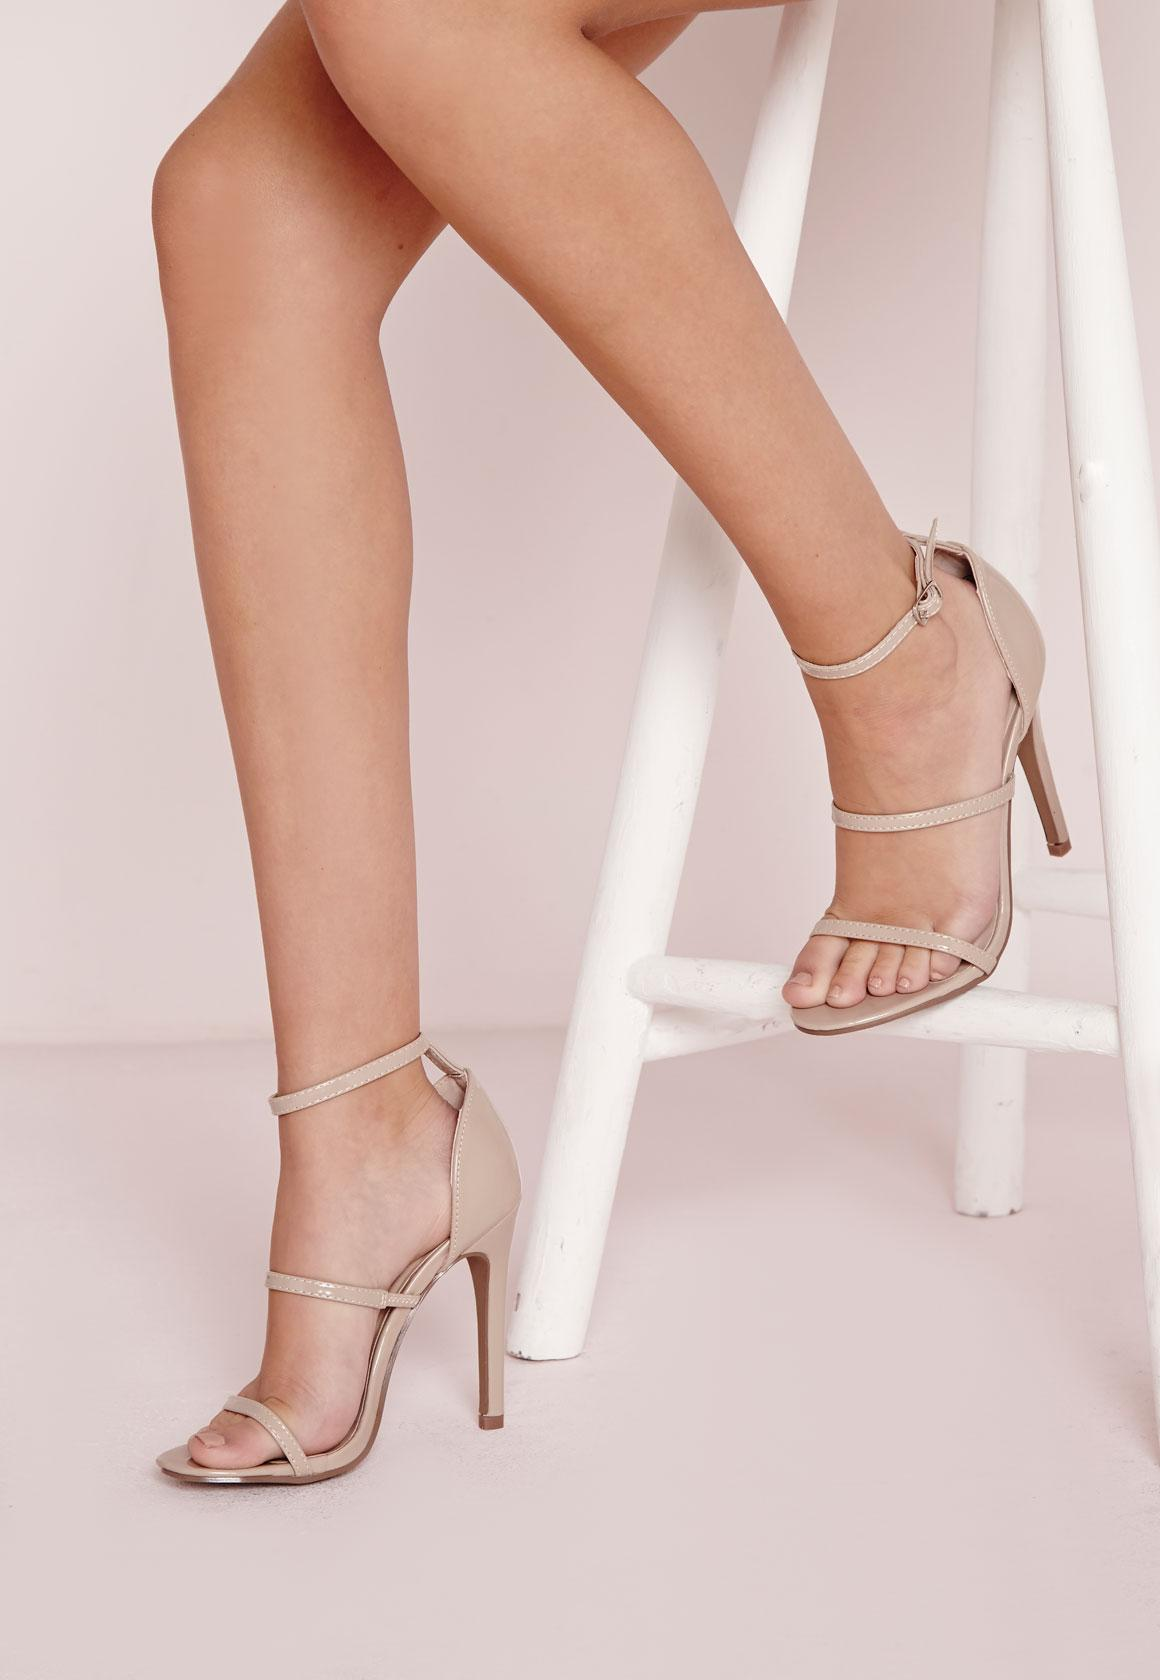 Three Strap Barely There Heeled Sandals Nude - Shoes - High Heels ...